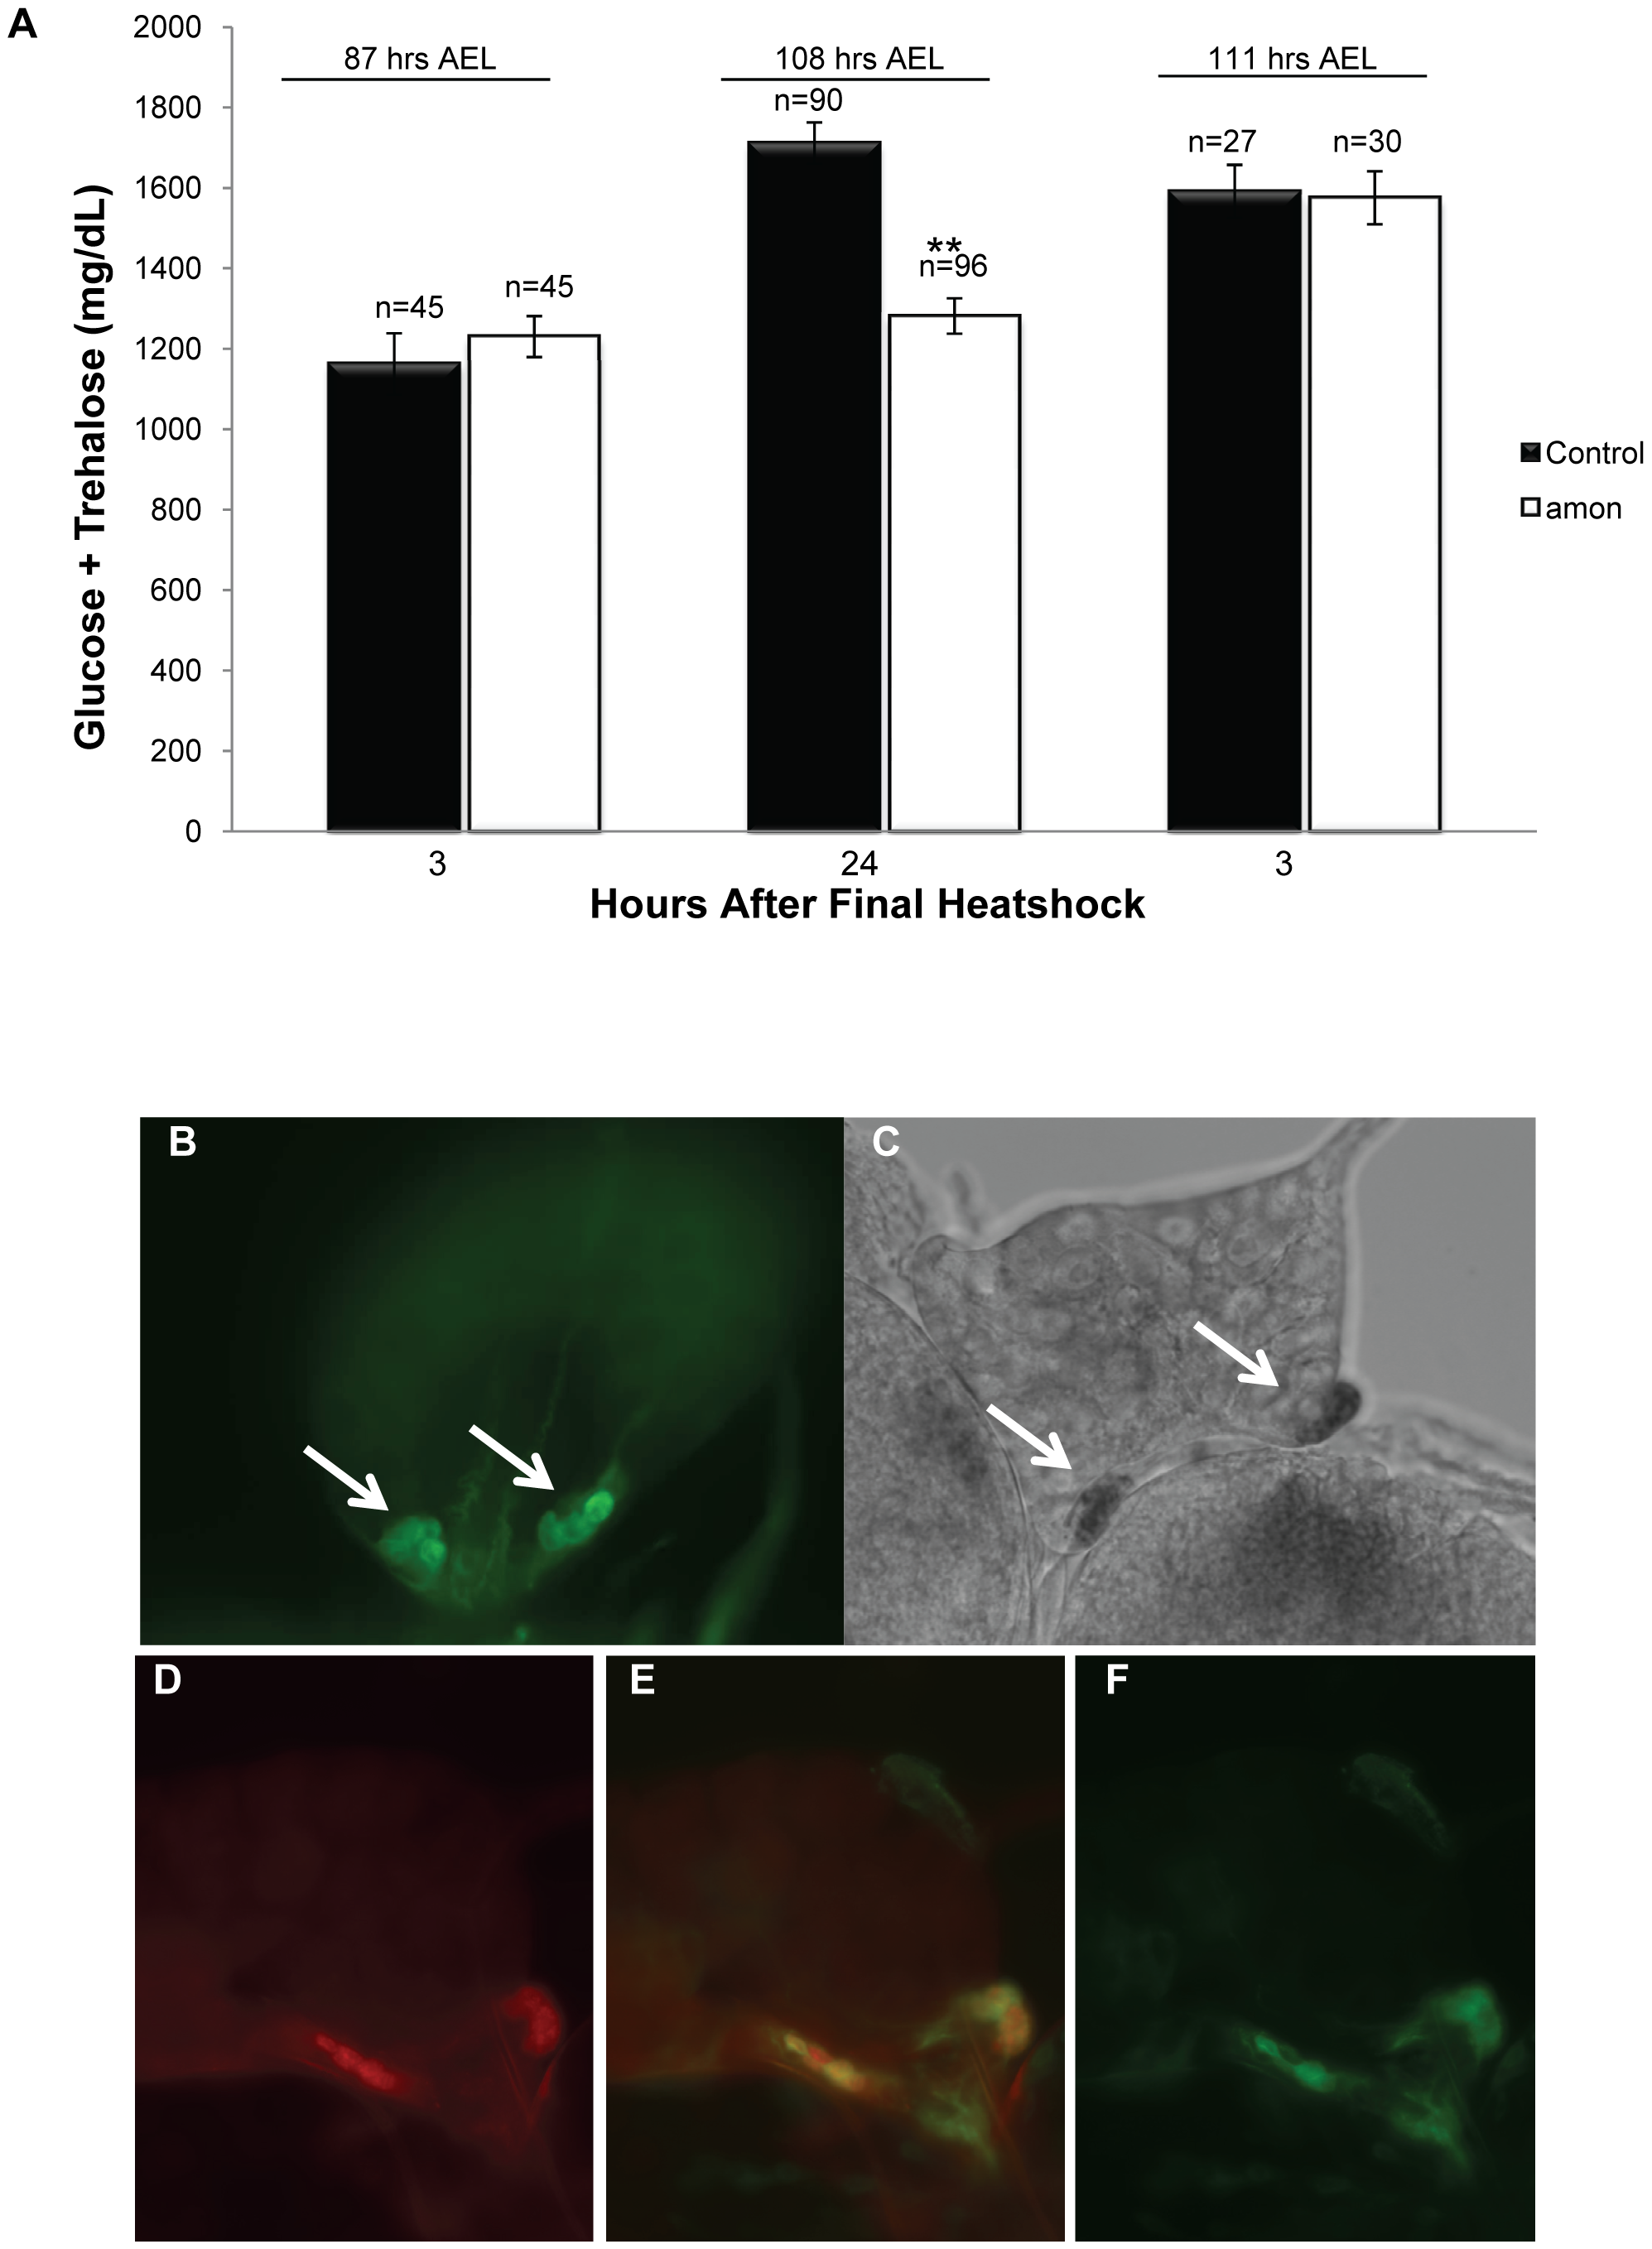 Larvae lacking functional <i>amon</i> have reduced hemolymph sugar levels.